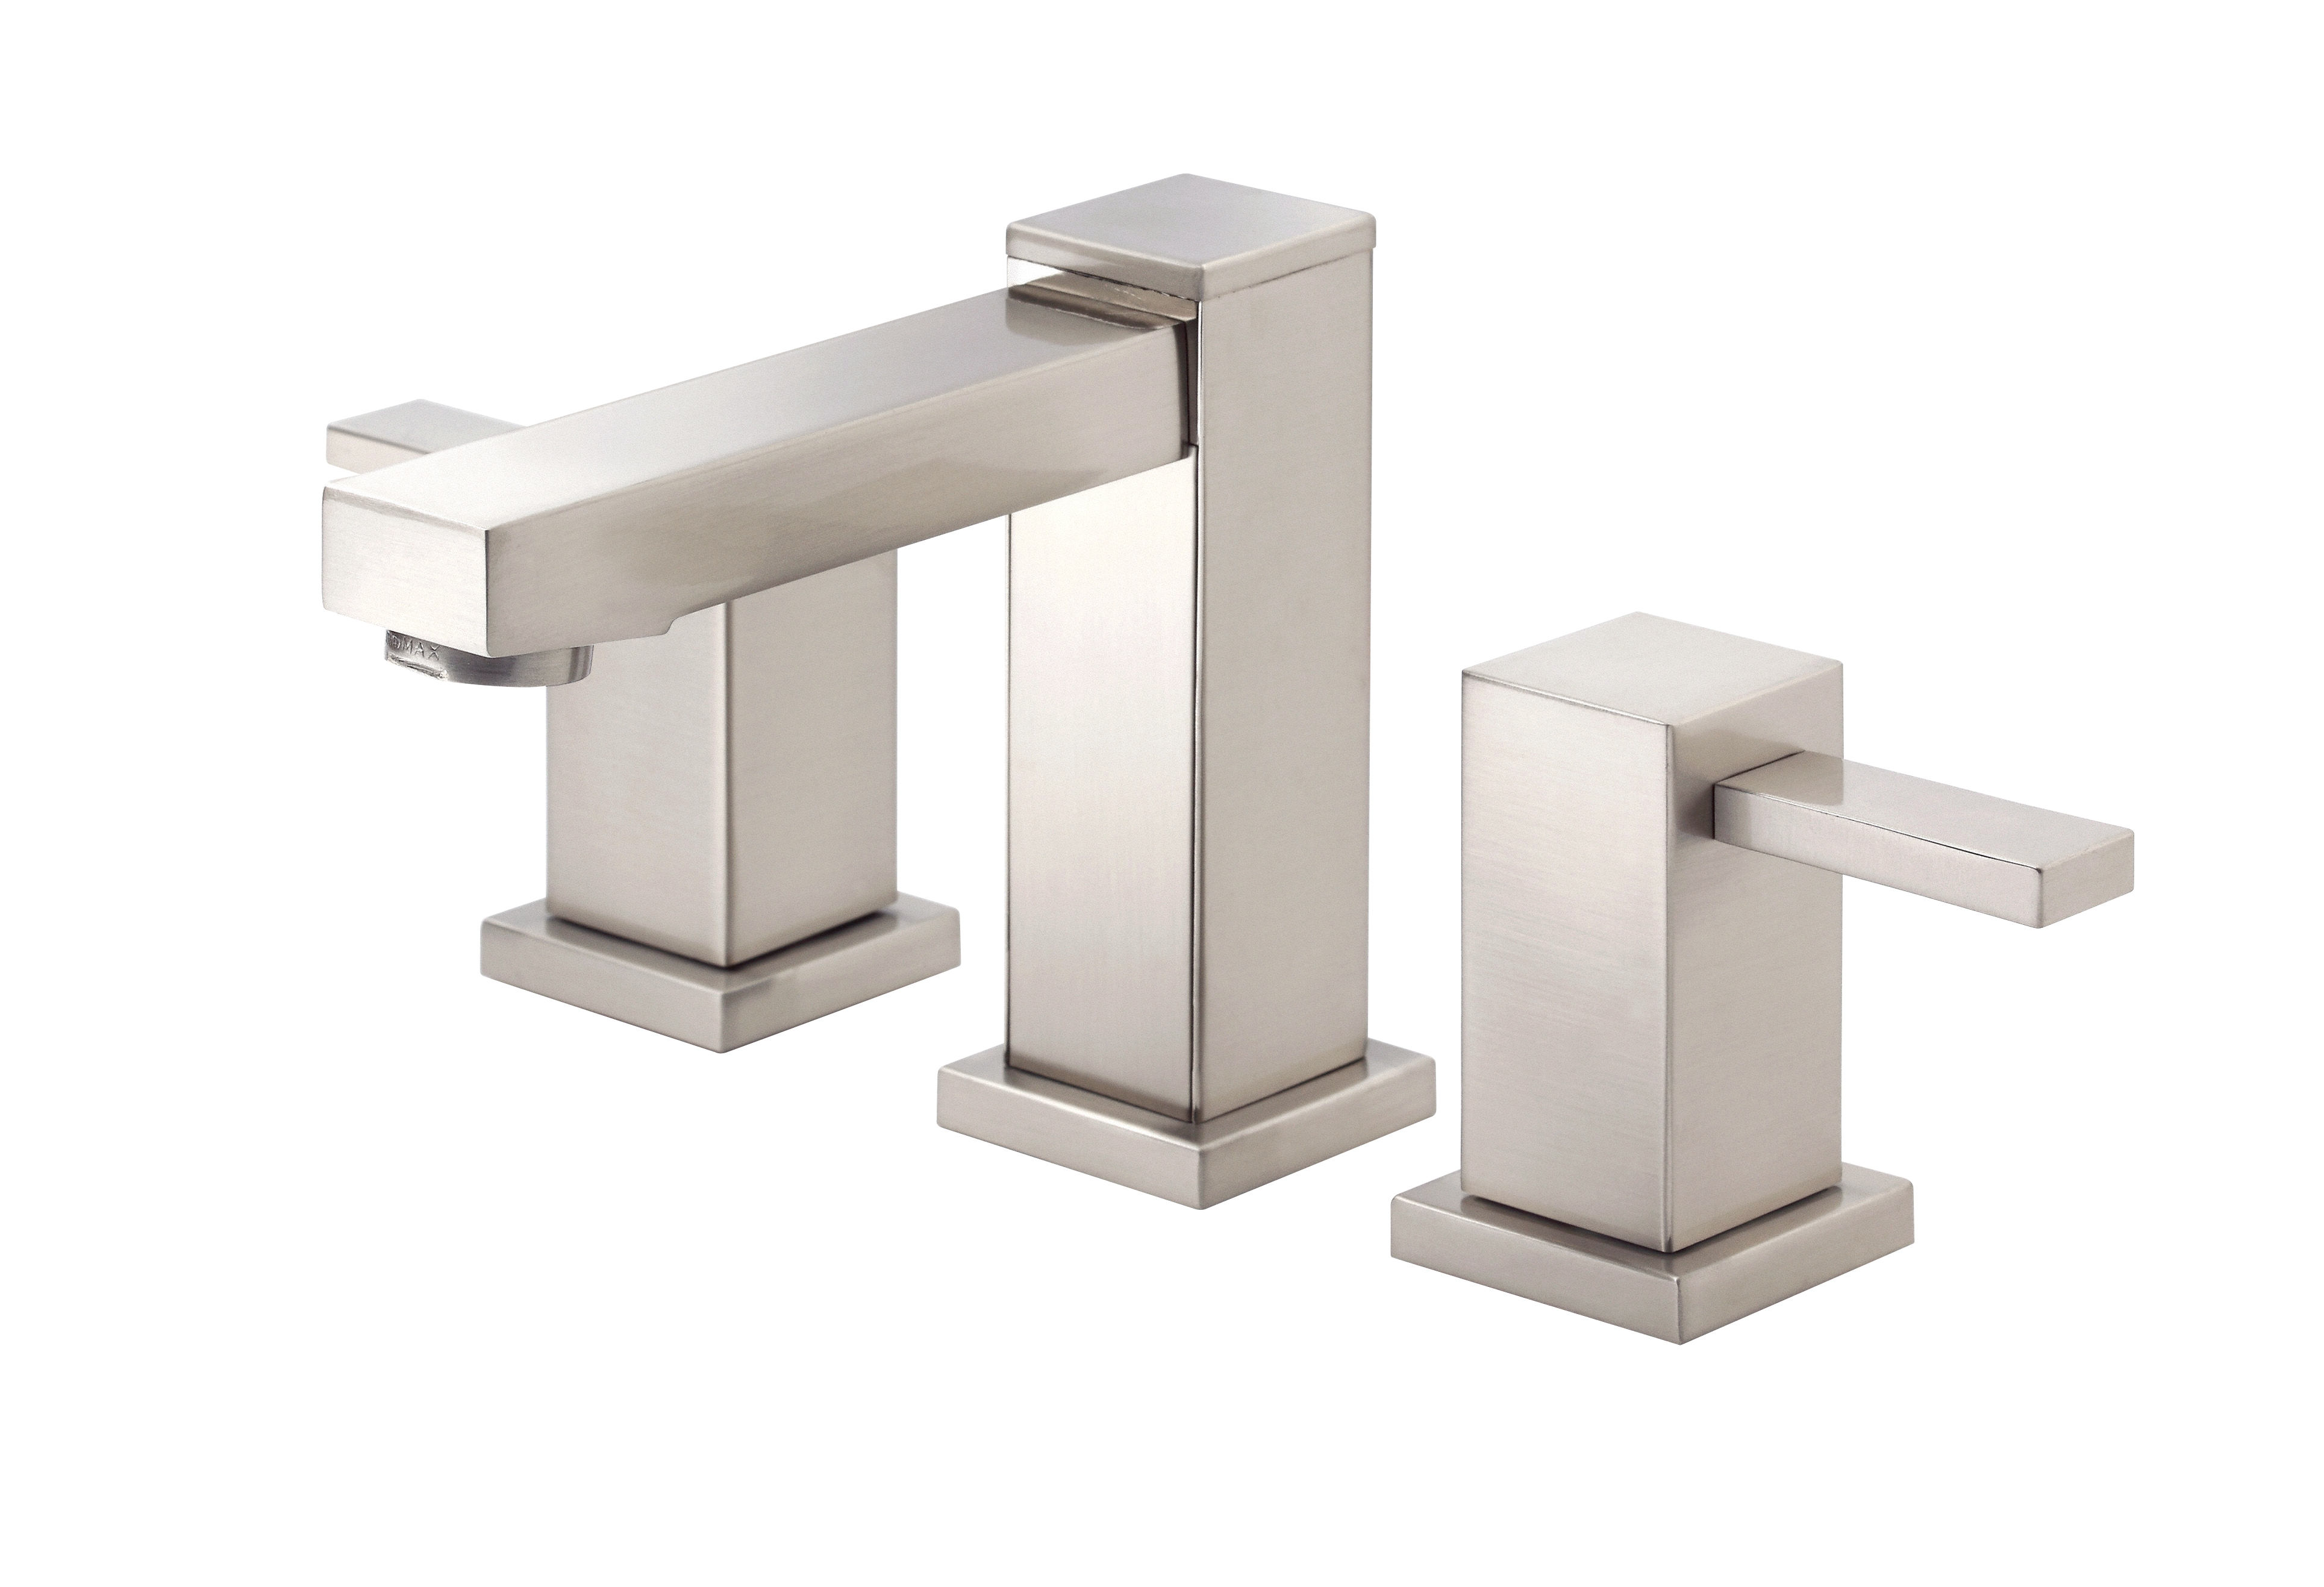 Ideas, kohler lavatory faucets widespread kohler lavatory faucets widespread bathroom perfect modern bathroom faucets for your sink decorating 3858 x 2634  .